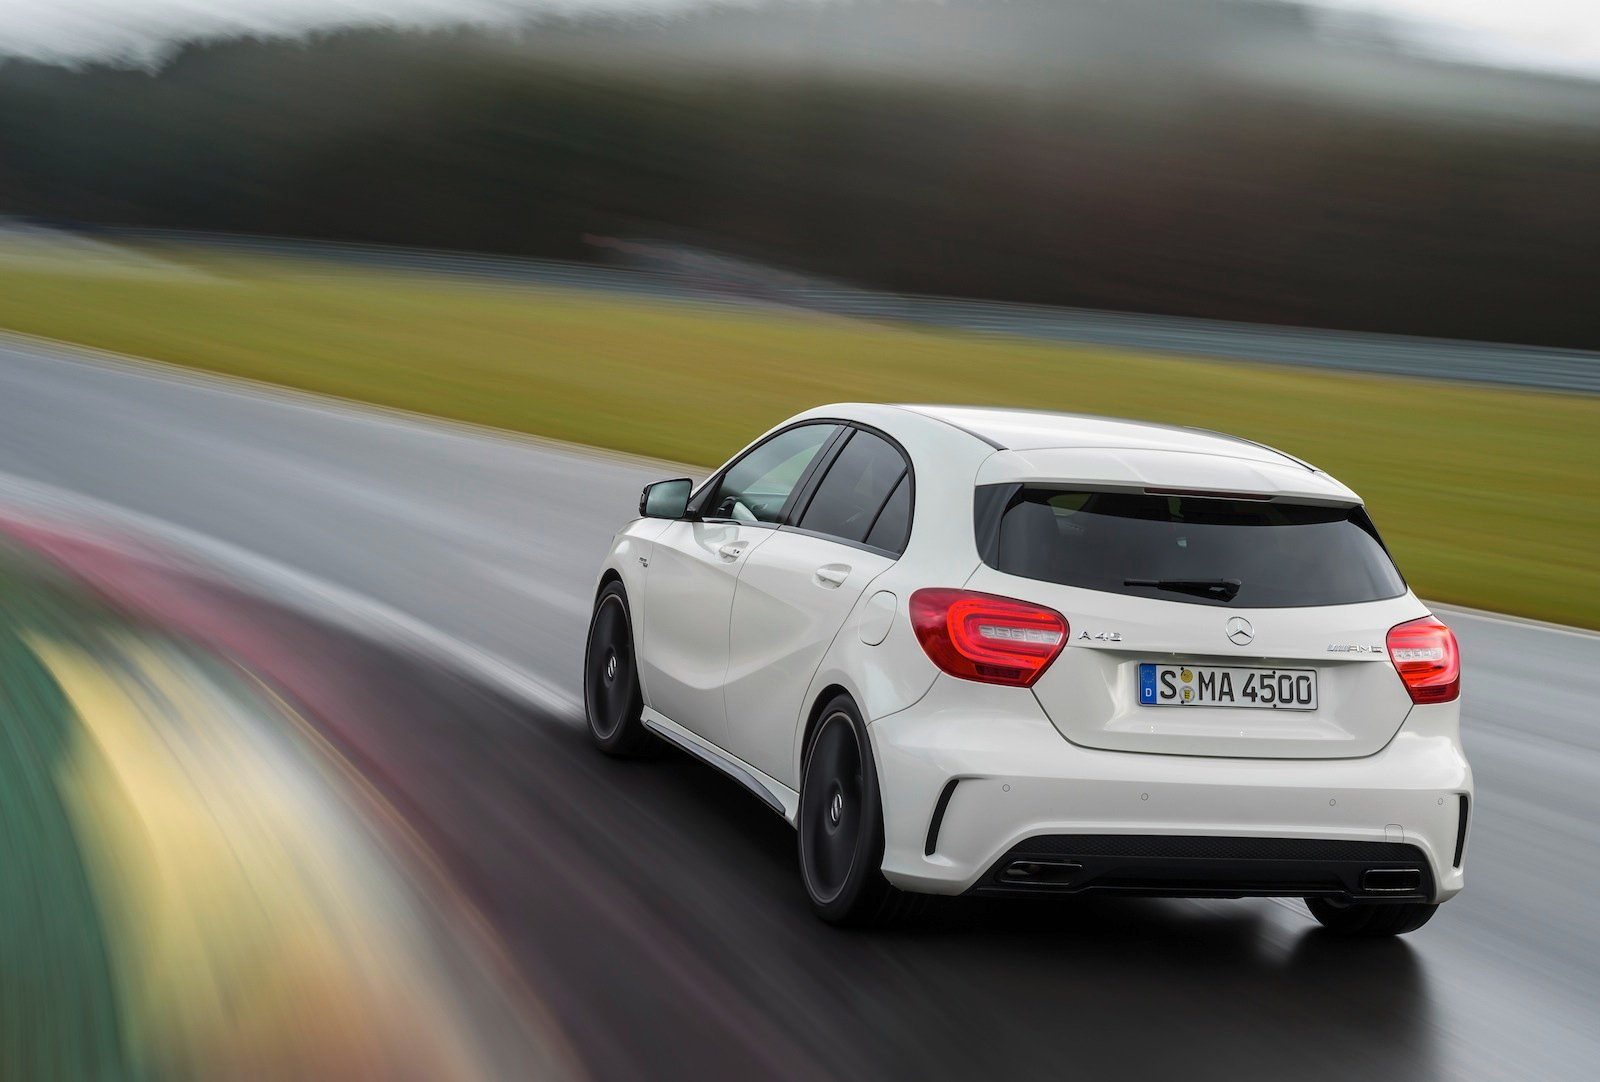 mercedes benz a45 amg 265kw hot hatch unleashed photos caradvice. Black Bedroom Furniture Sets. Home Design Ideas